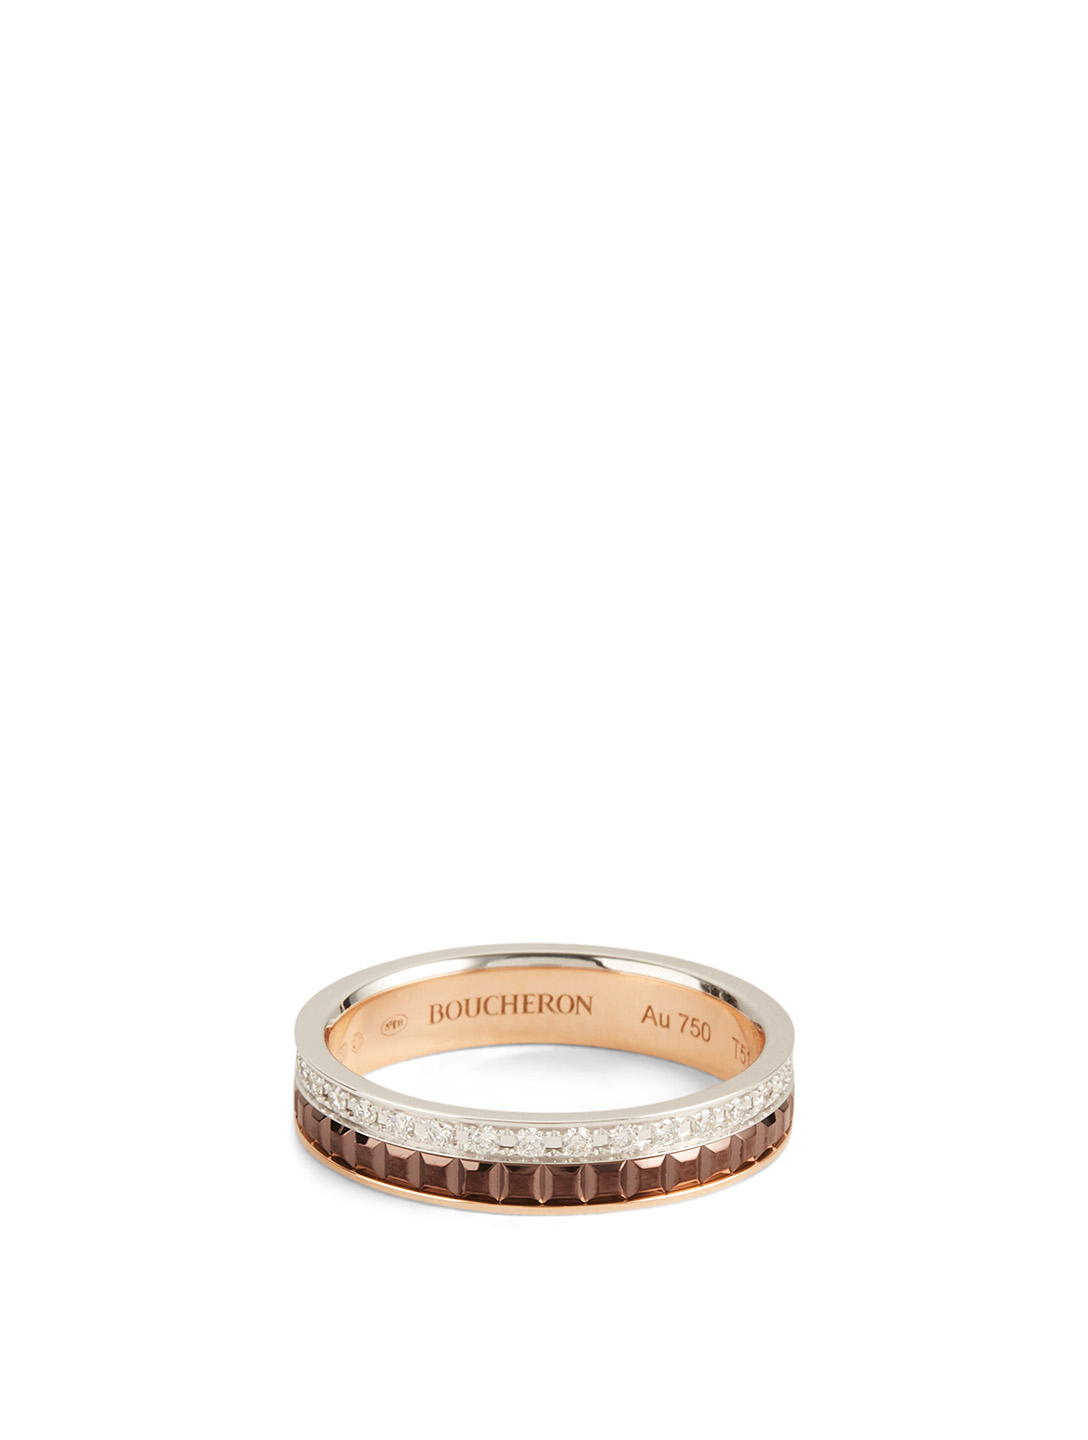 BOUCHERON Quatre Classique Gold Wedding Band With Brown PVD And Diamonds Womens Metallic